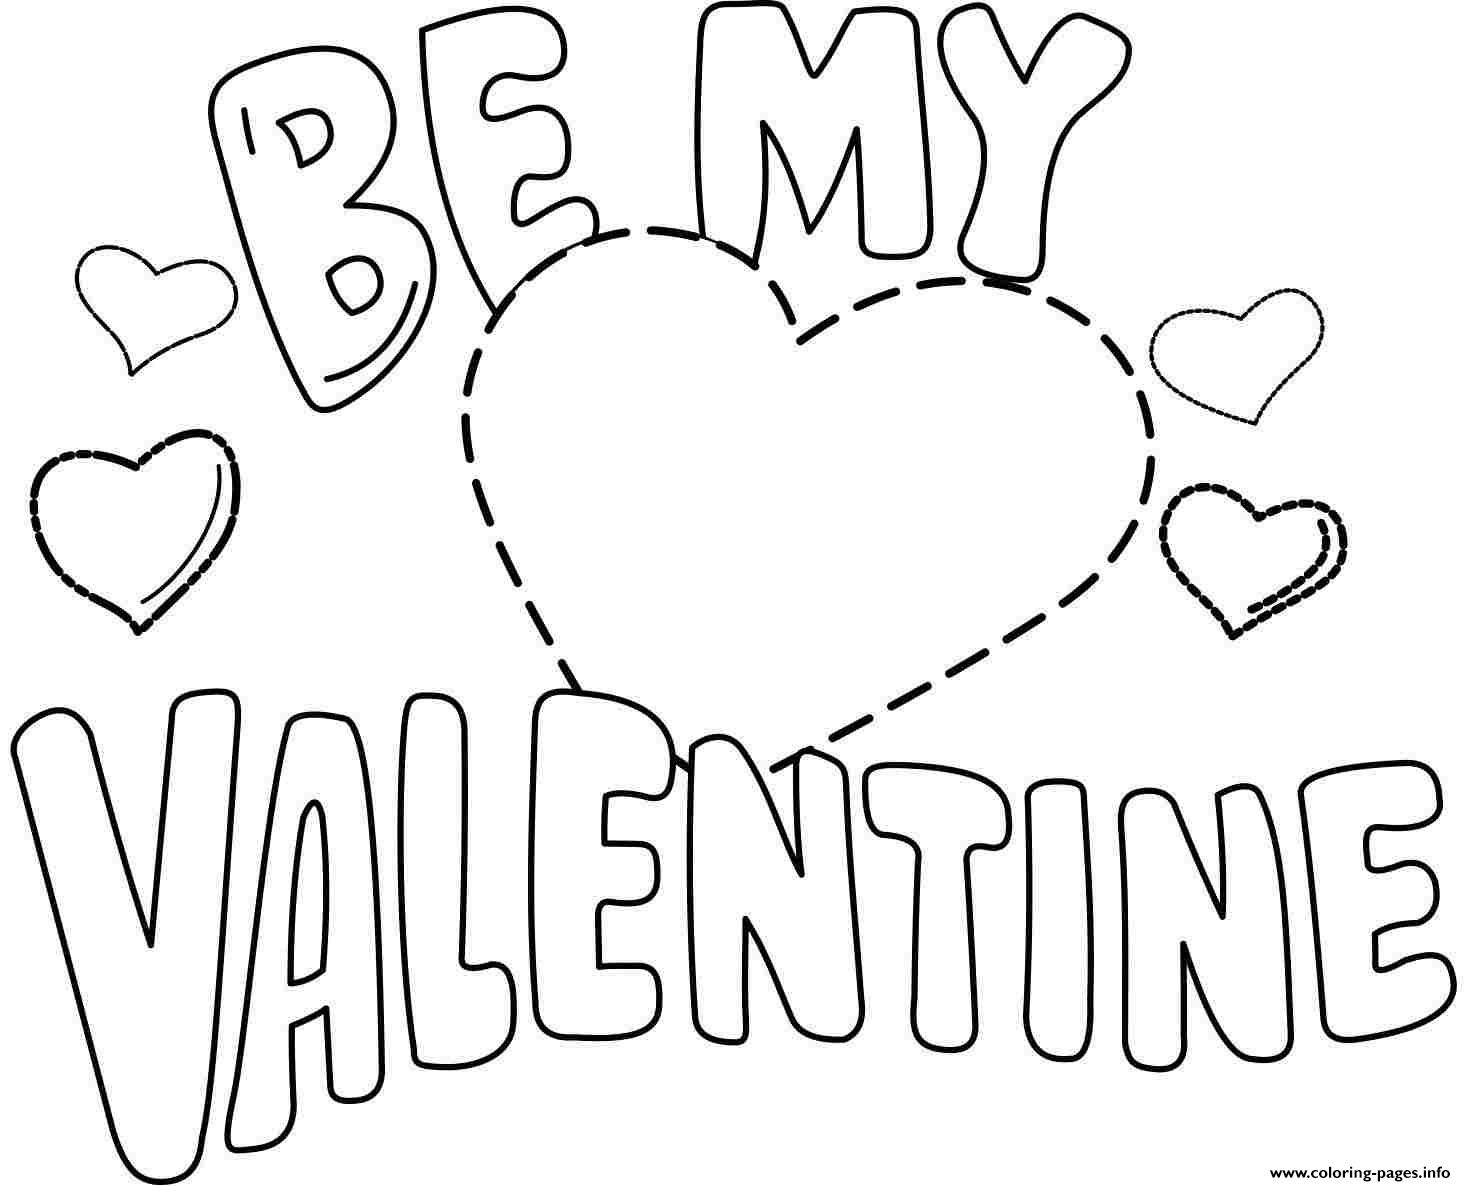 Coloring Book World: Printable Valentine Coloring Pages. Free - Free Printable Valentine Coloring Pages